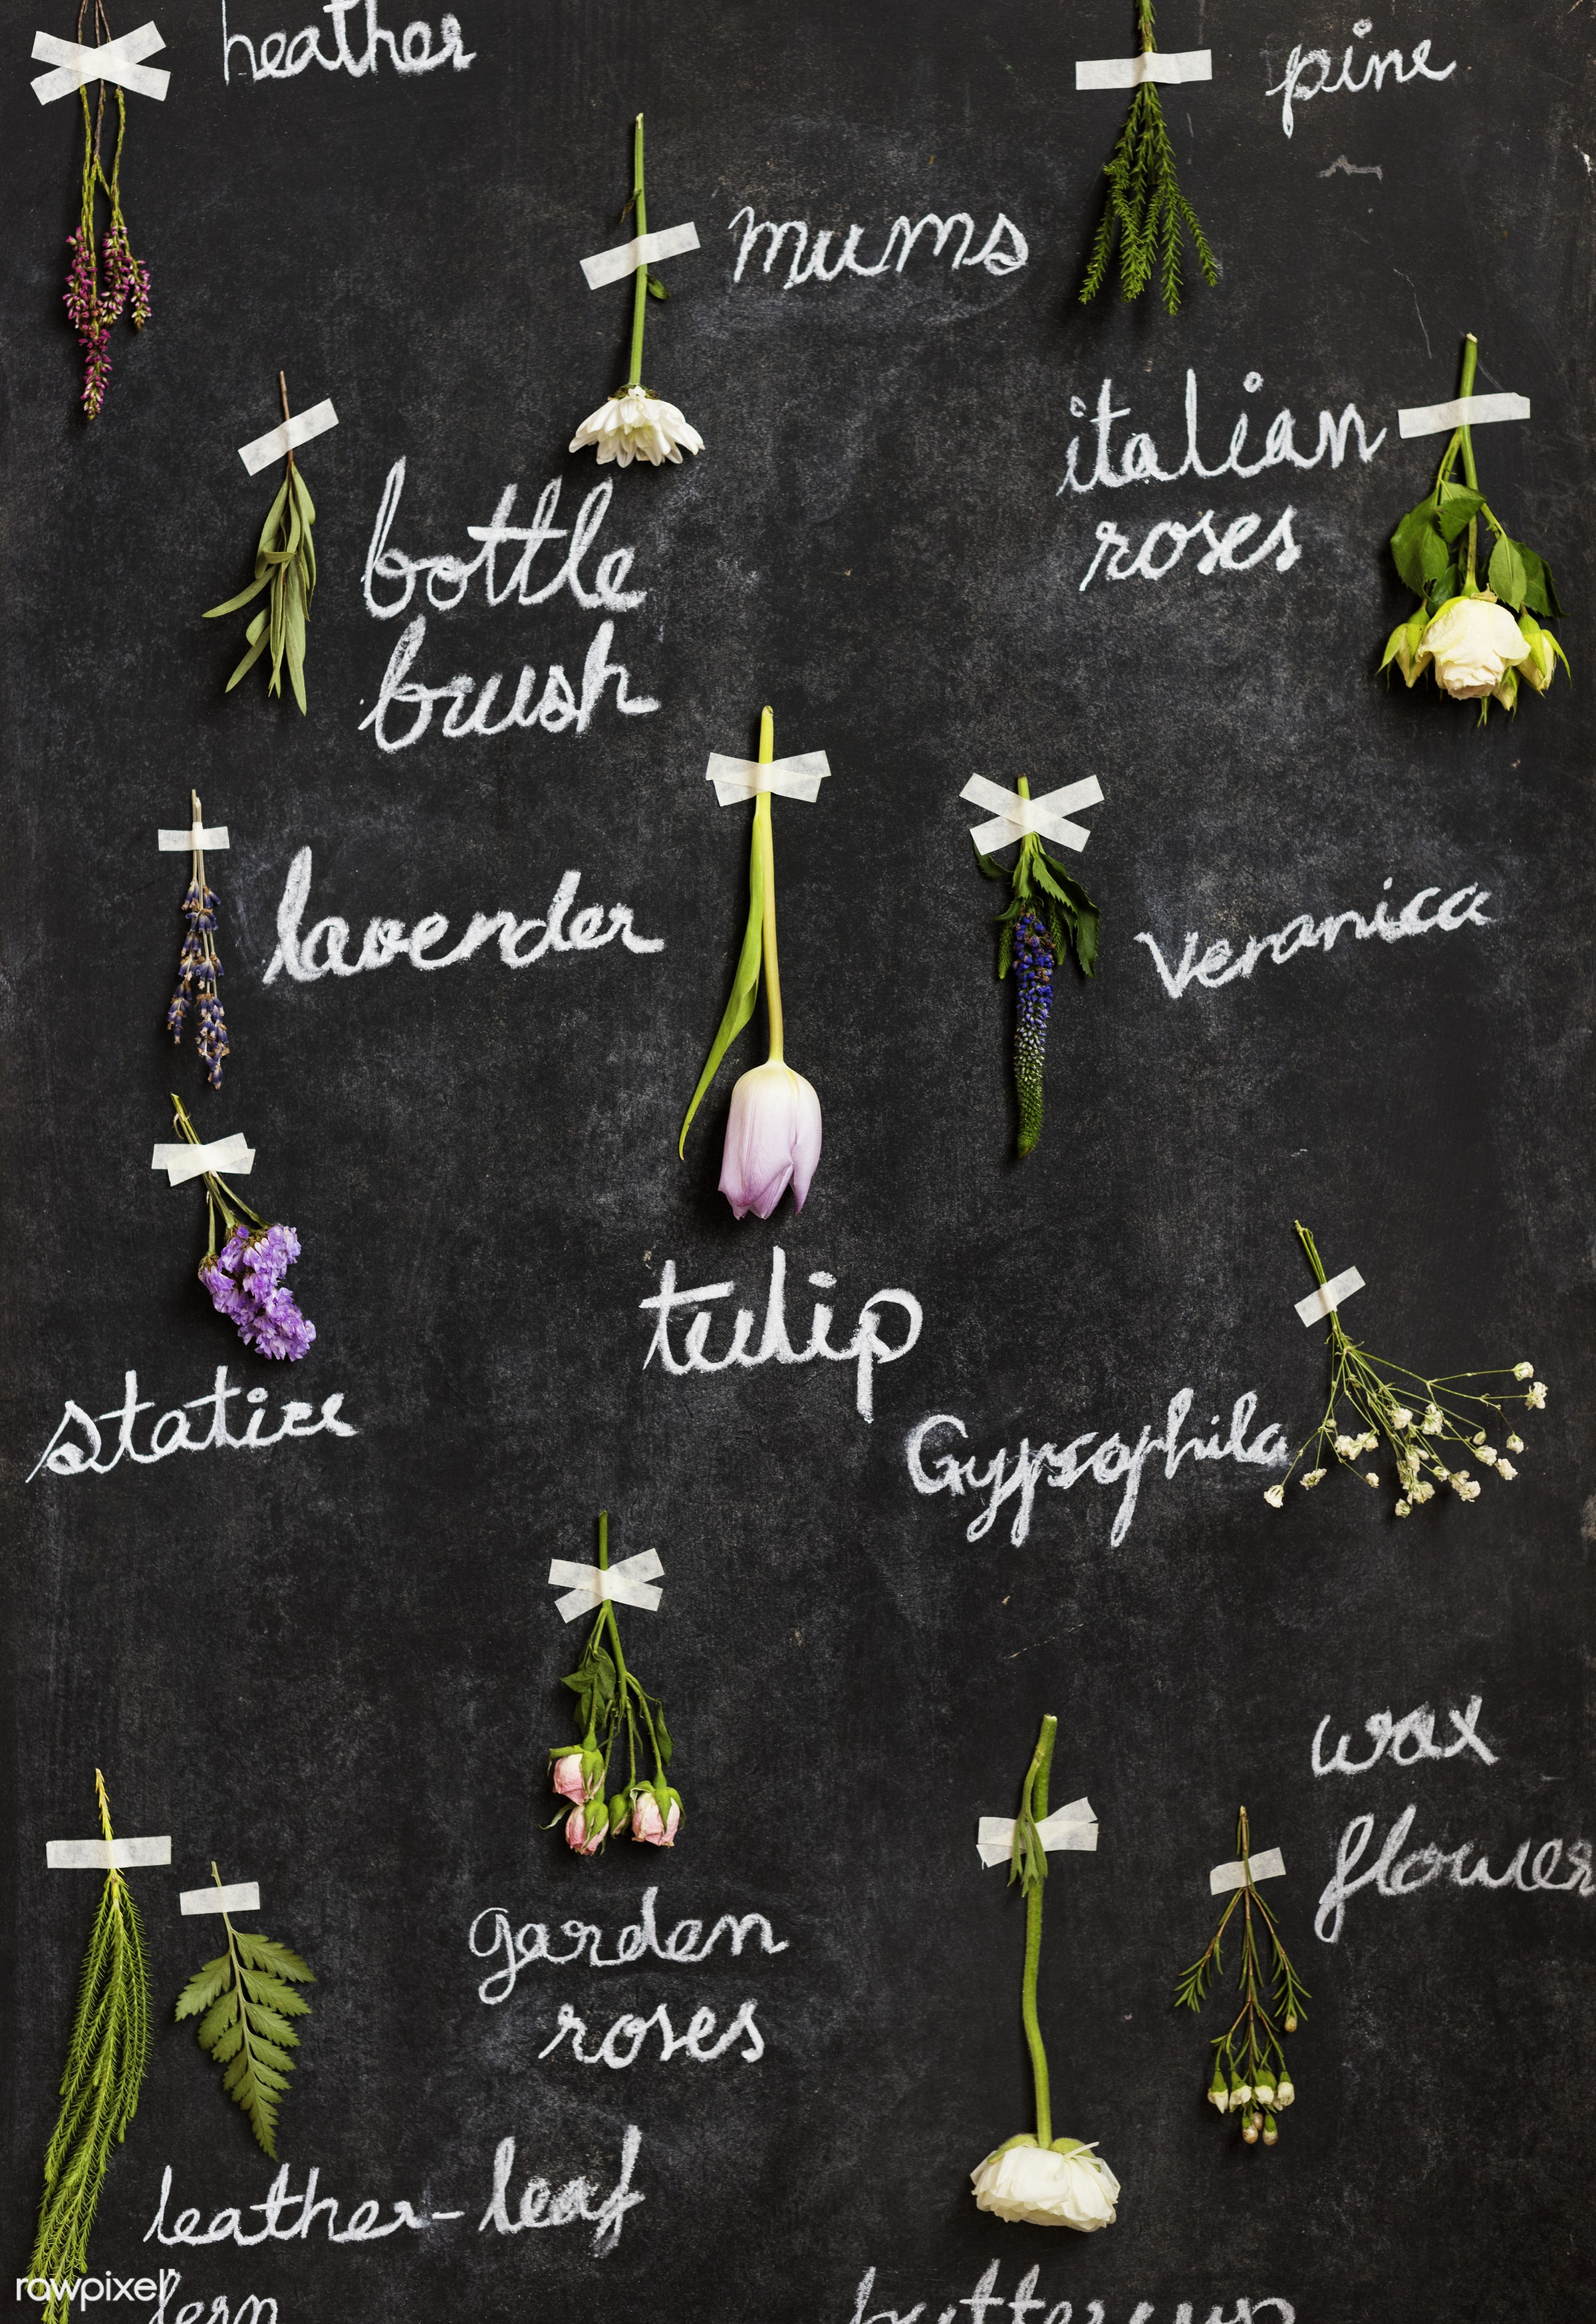 Labeled dried flowers on blackboard - hanging, flowers, dried, real, natural, leaves, nature, label, name, information, data...